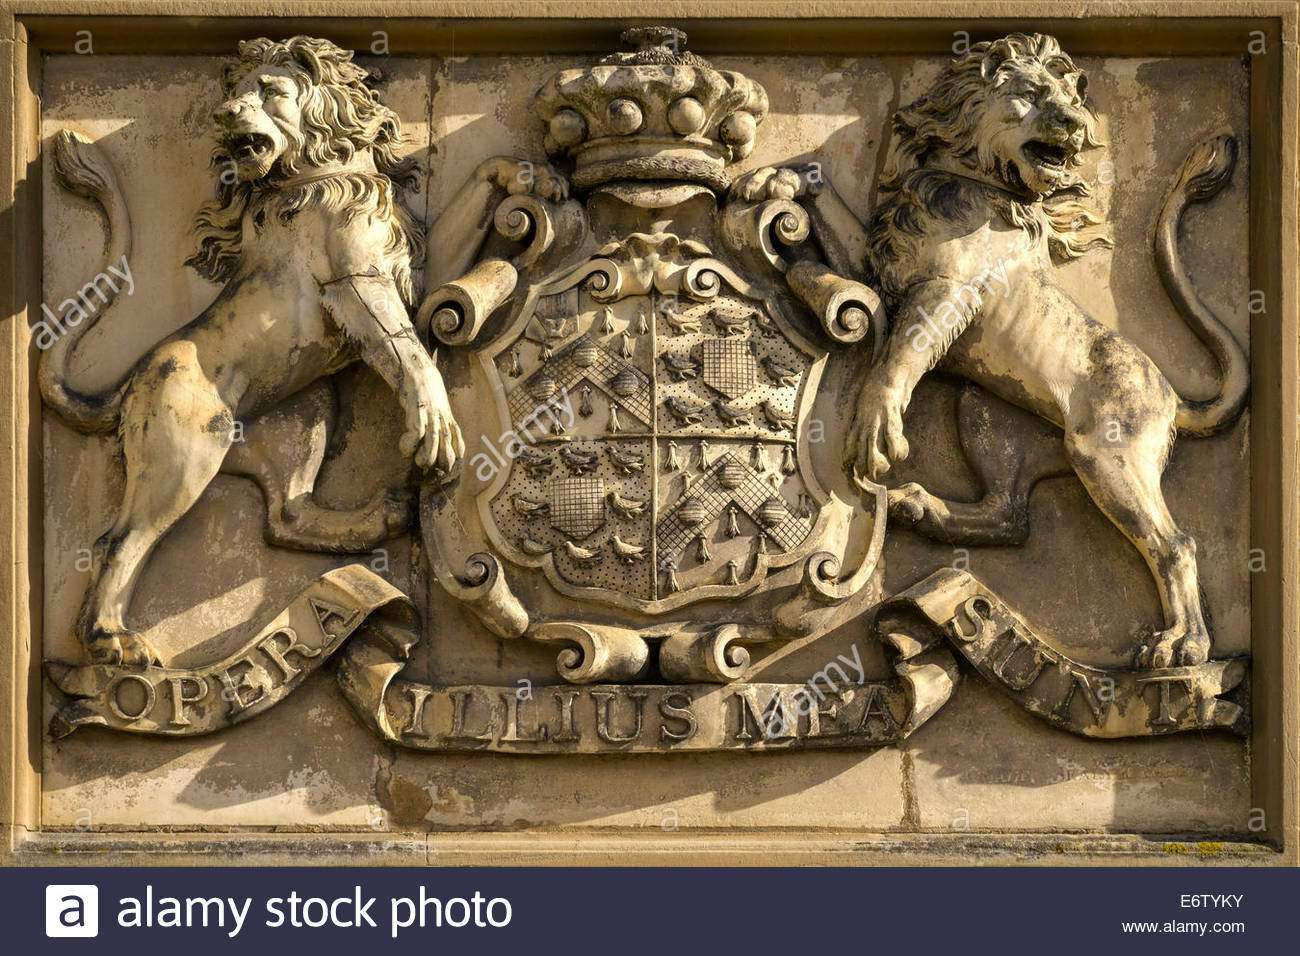 Brownlow family coat of arms and motto carved in stone